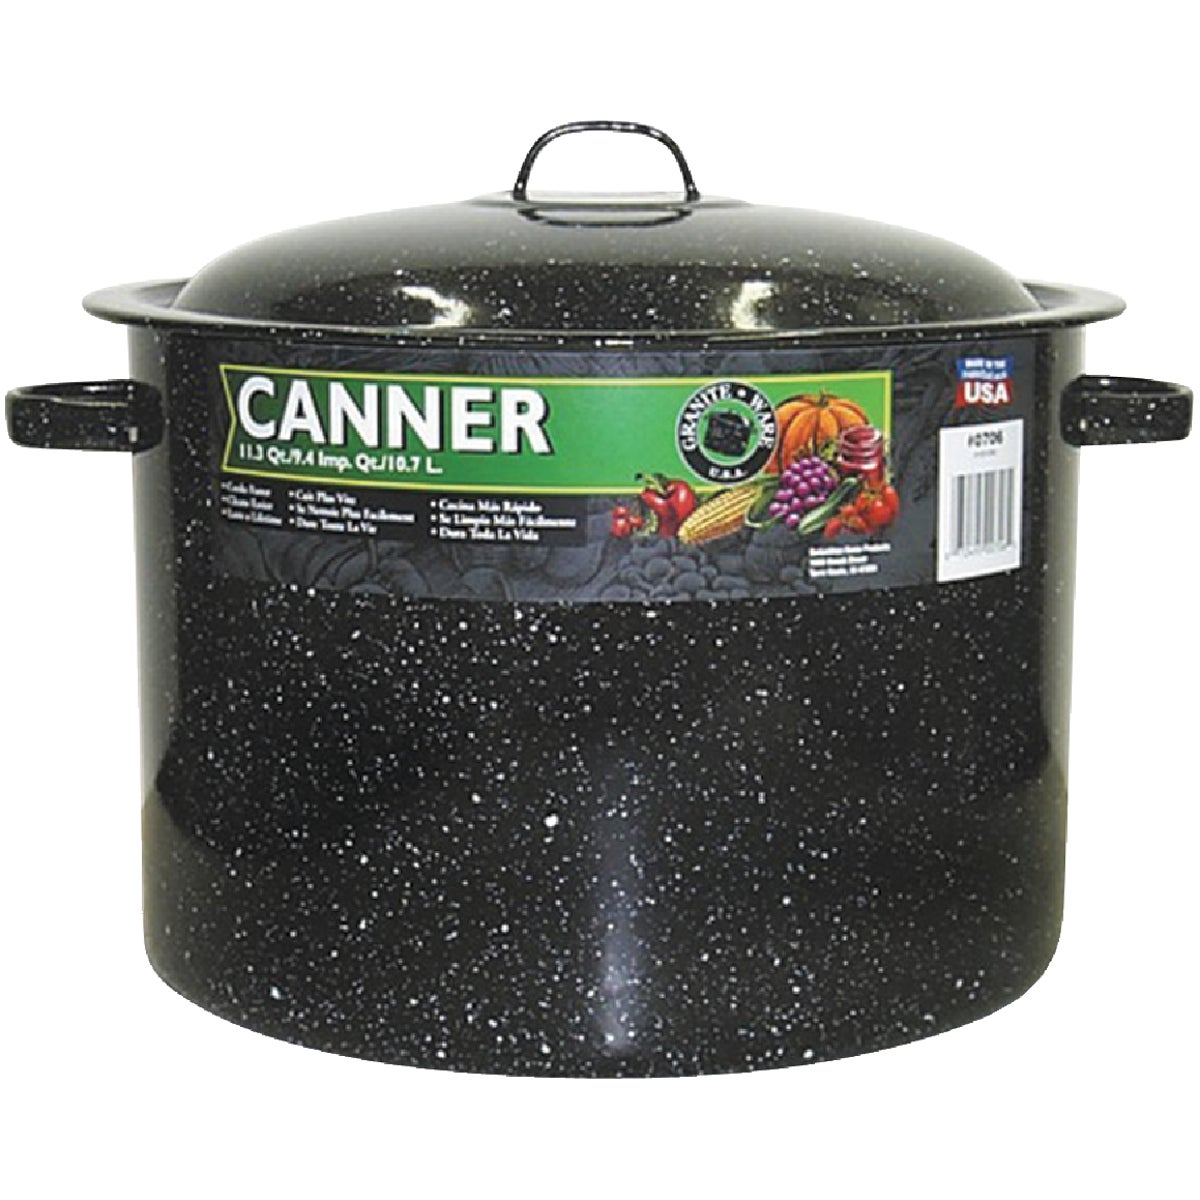 21QT CANNER - 0707-3 by Columbian Home Prod